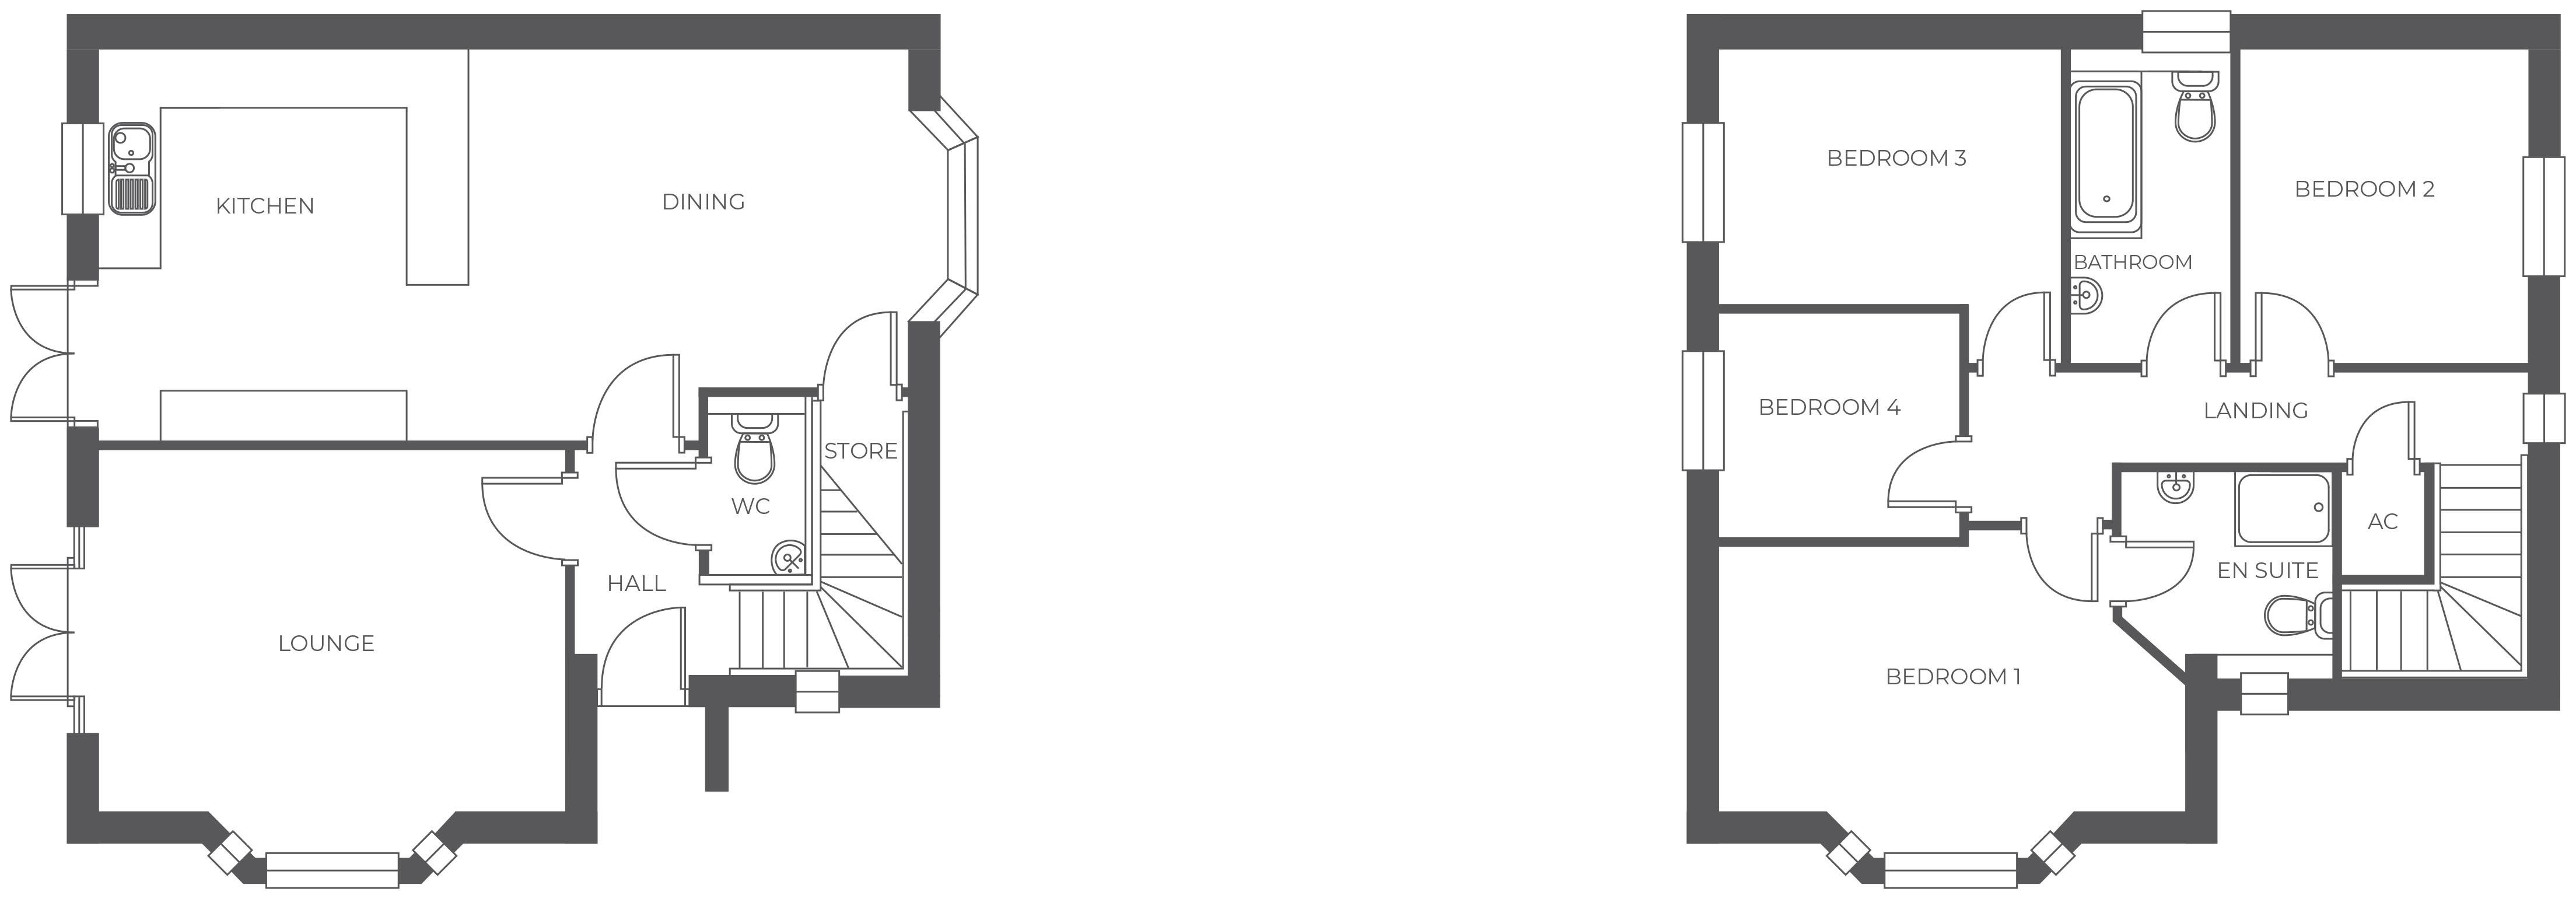 Ferrer's Chase, Plot 24 floor plan